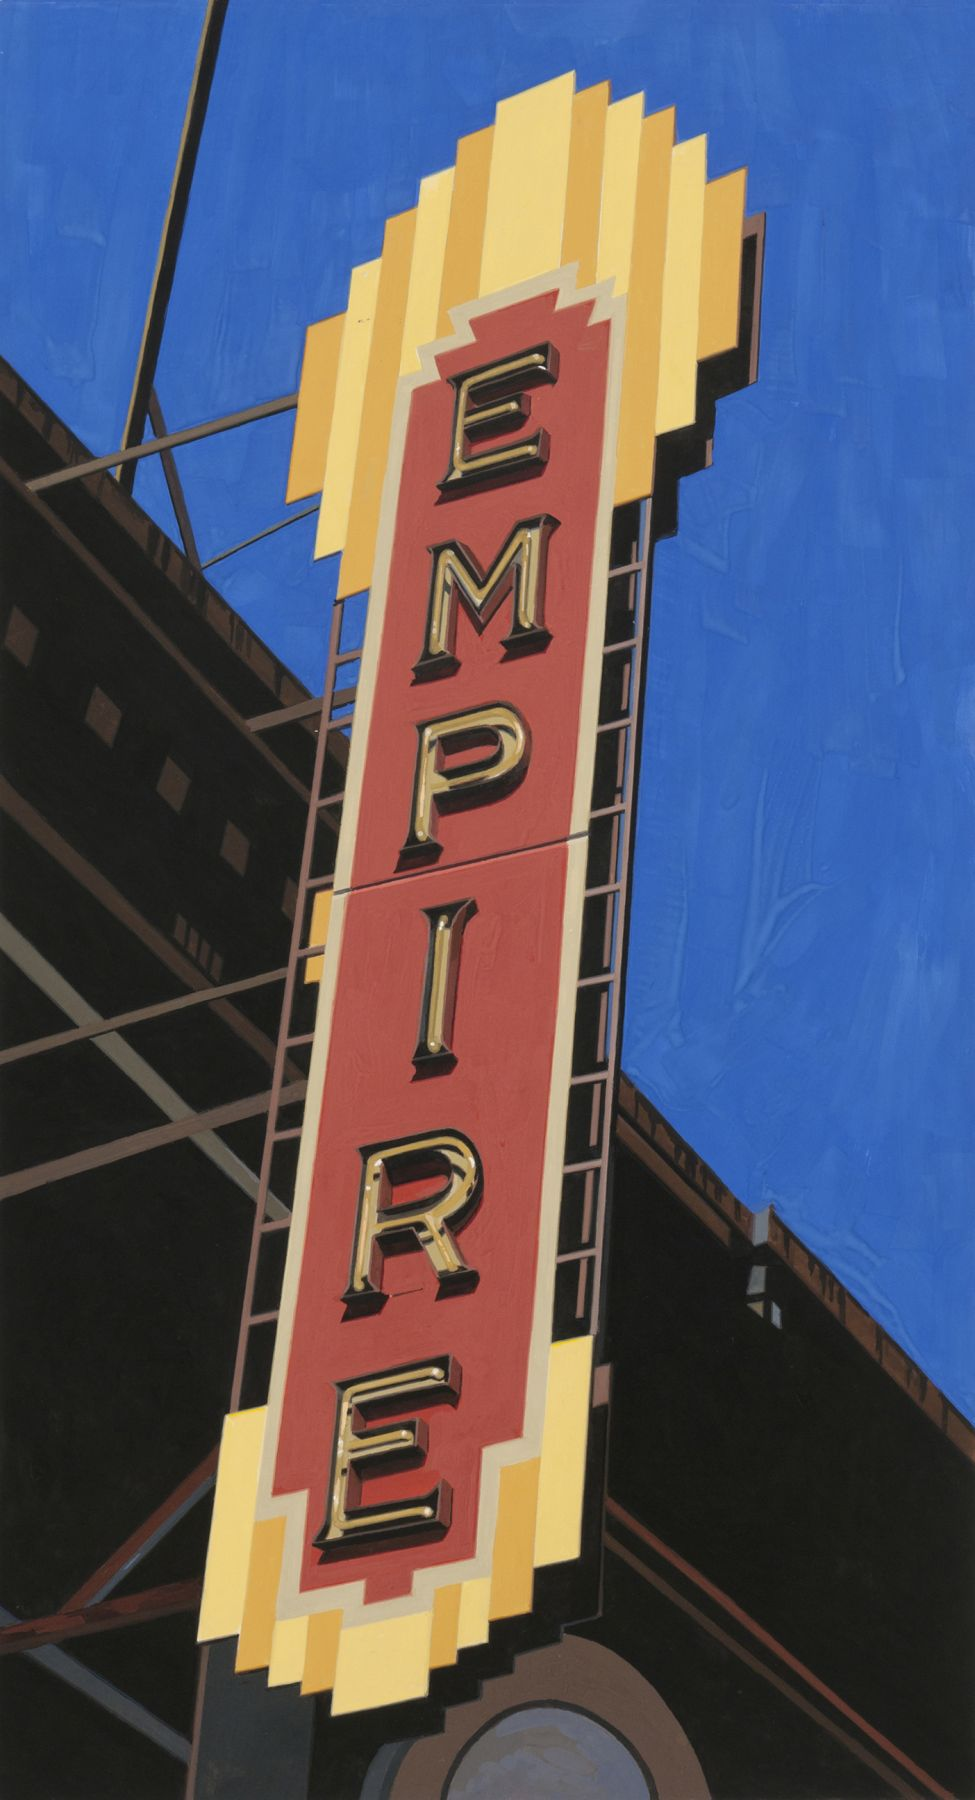 robert cottingham, Empire II (SOLD), 2010, gouache on paper, 27 1/2 x 15 inches